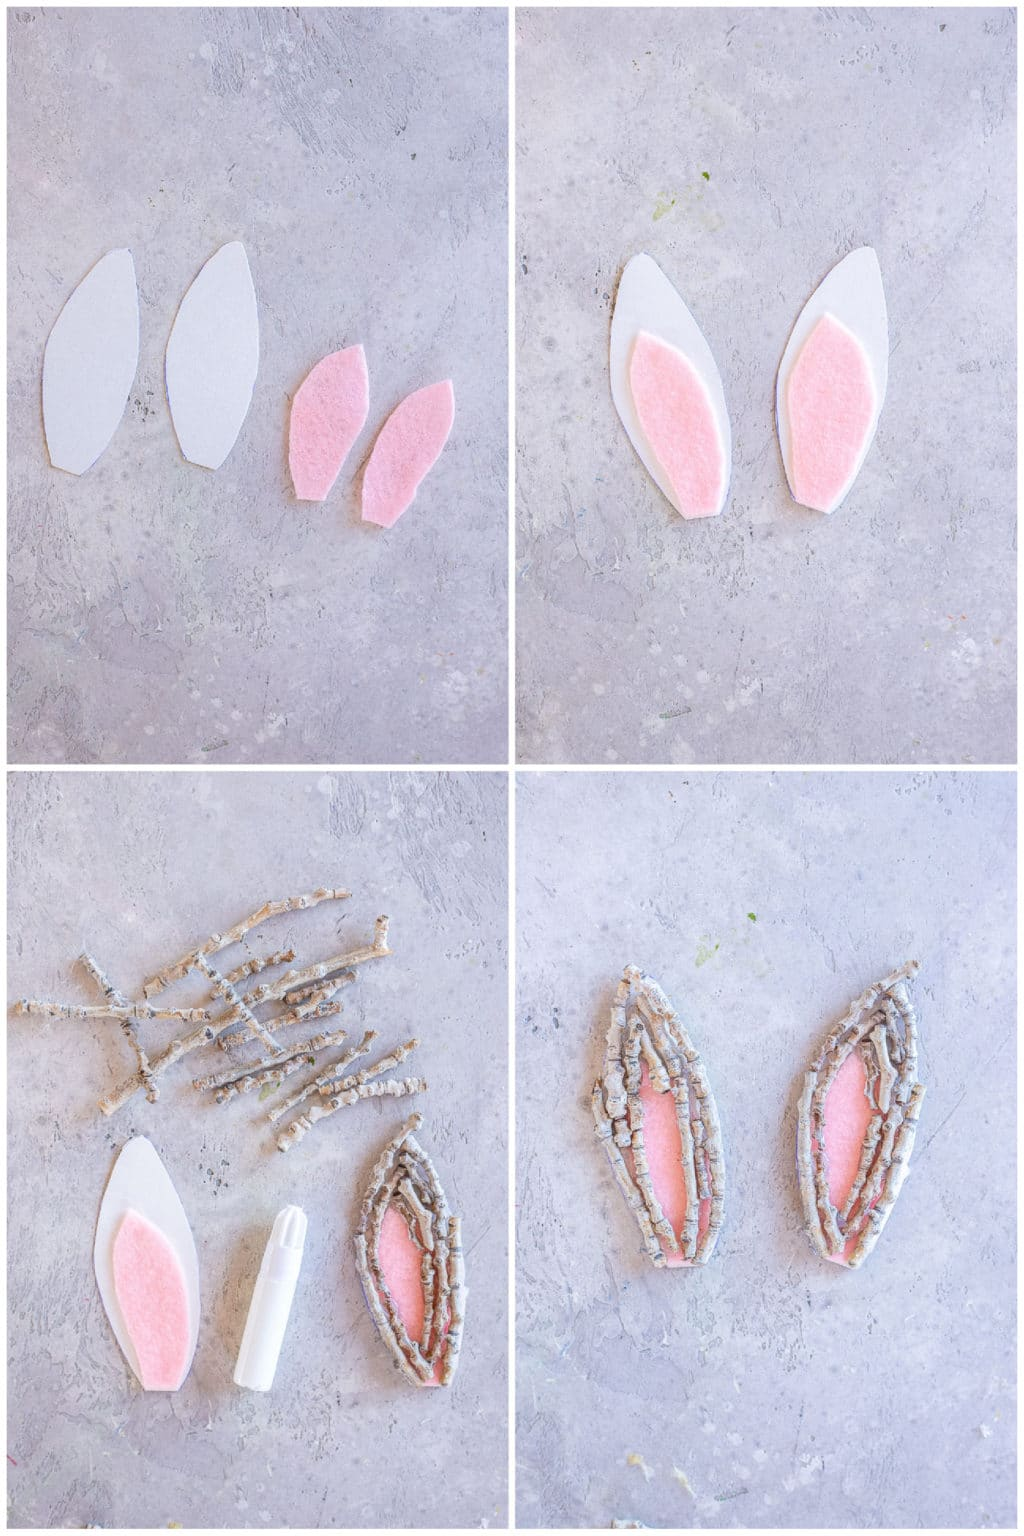 step by step instructions on how to make these Easter Bunny Twig Ears